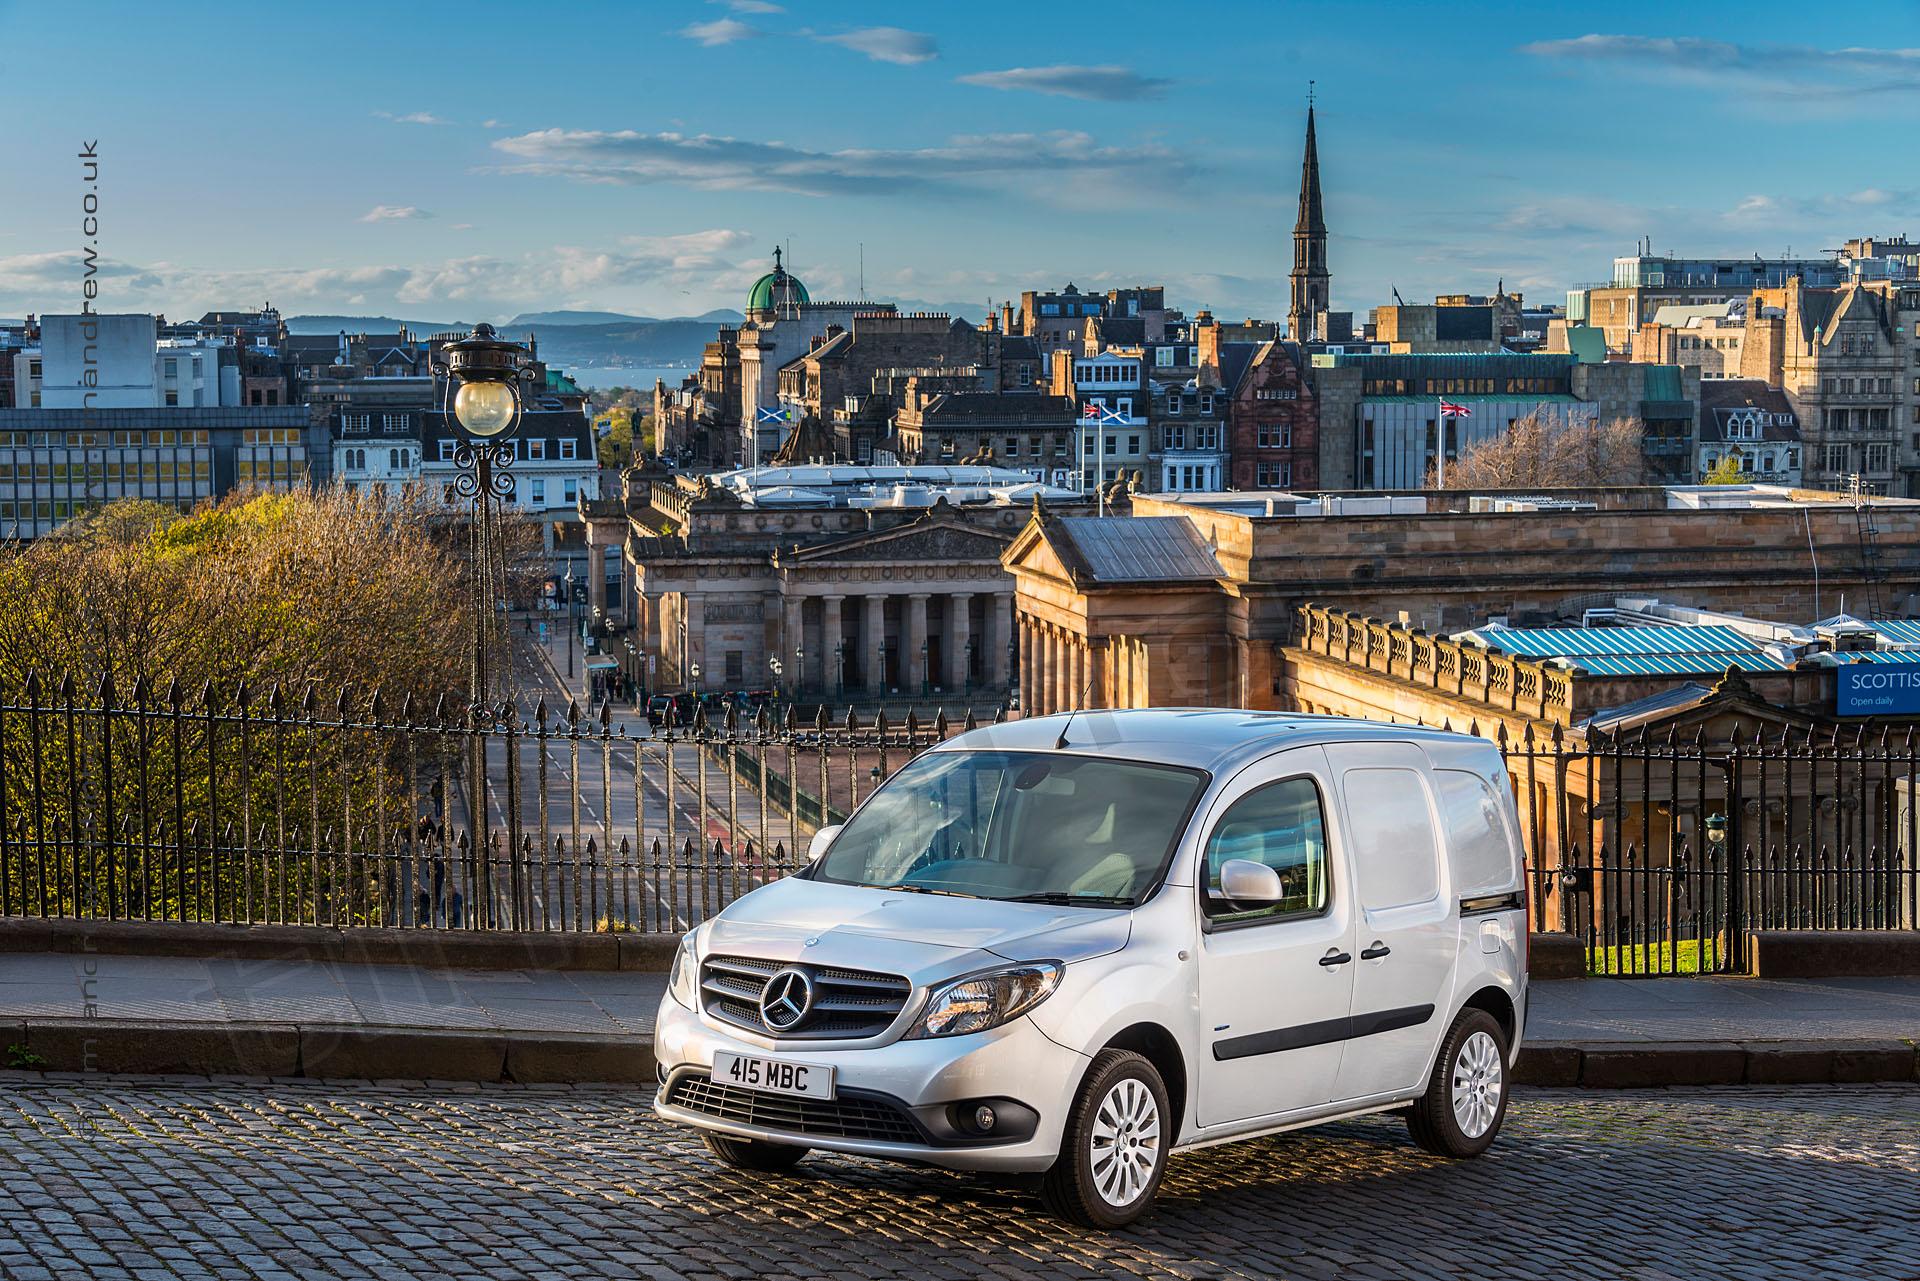 Mercedes Citan van in Edinburgh